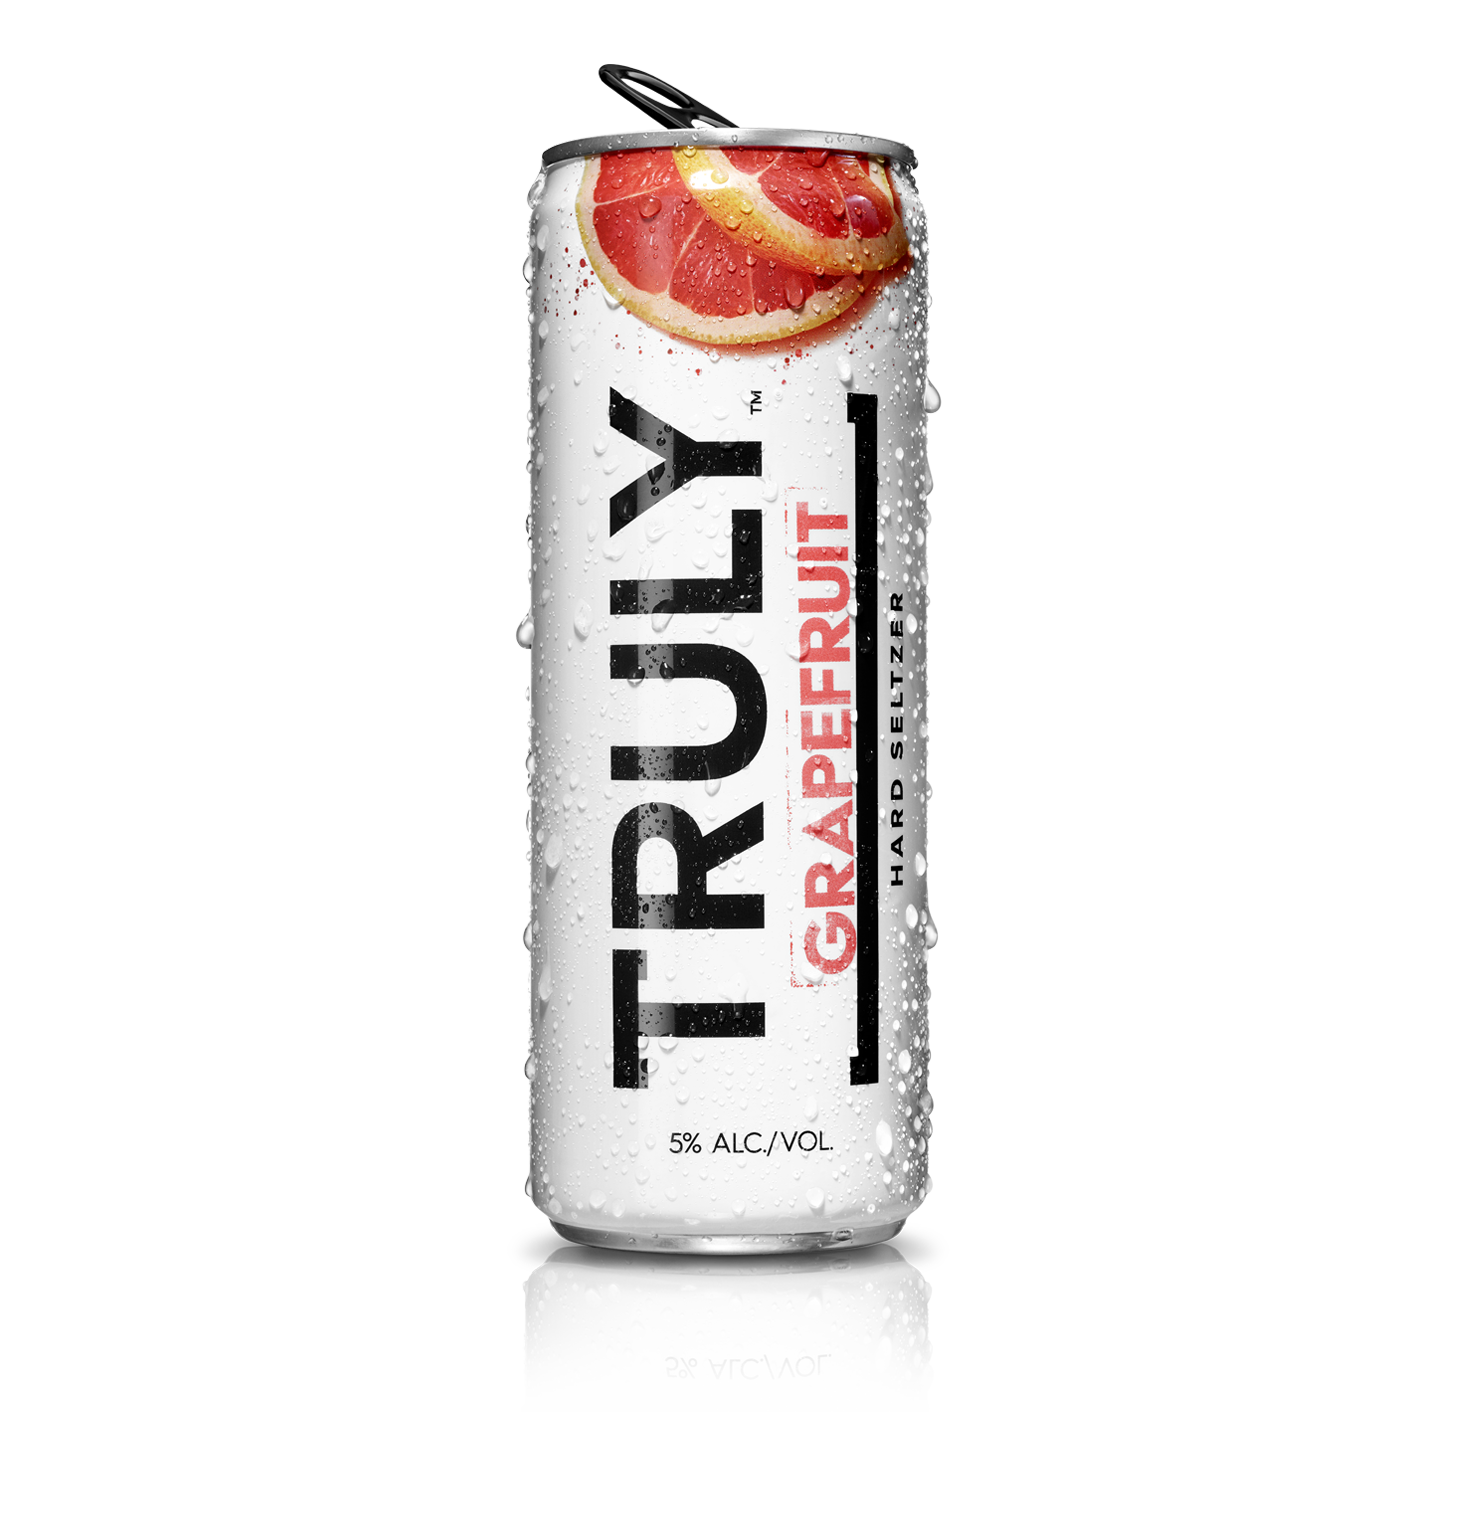 Truly Hard Seltzer Grapefruit ABV 5 % 6 Pack Can